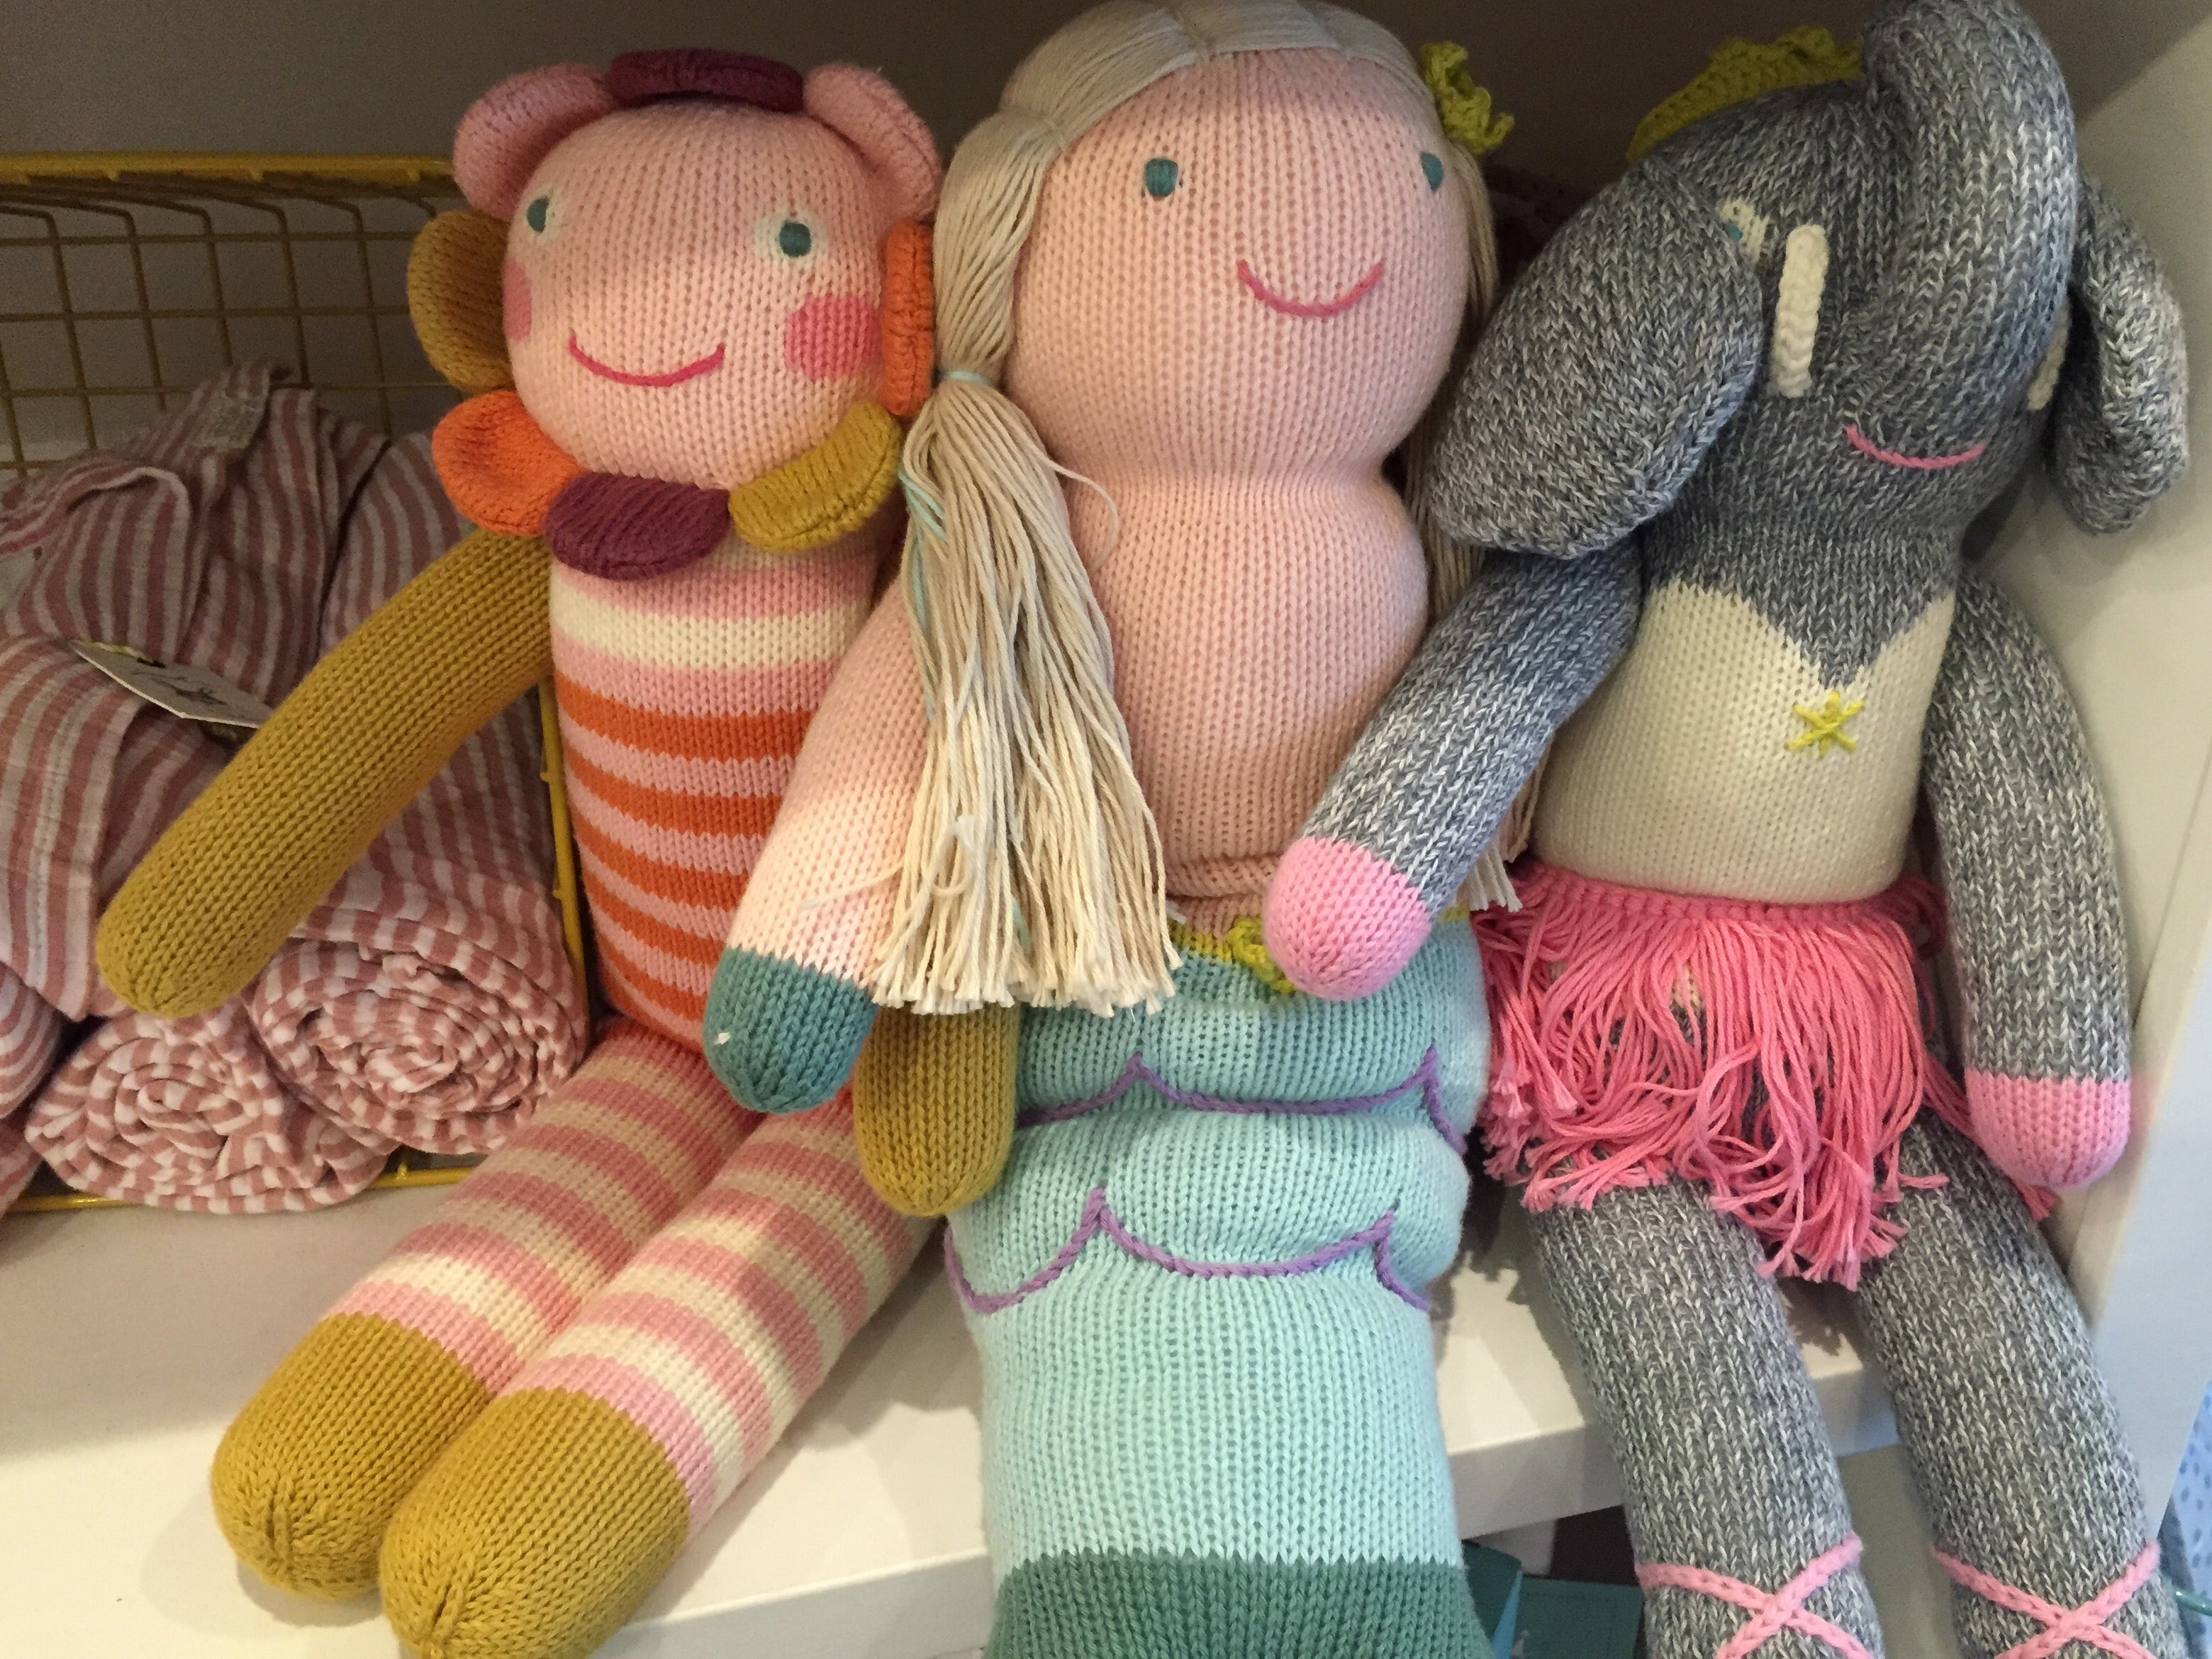 BlaBla dolls are one of our favorite gifts to give the little people in our lives. Hand knit by Peruvian artisans, these dolls are soft and cuddly